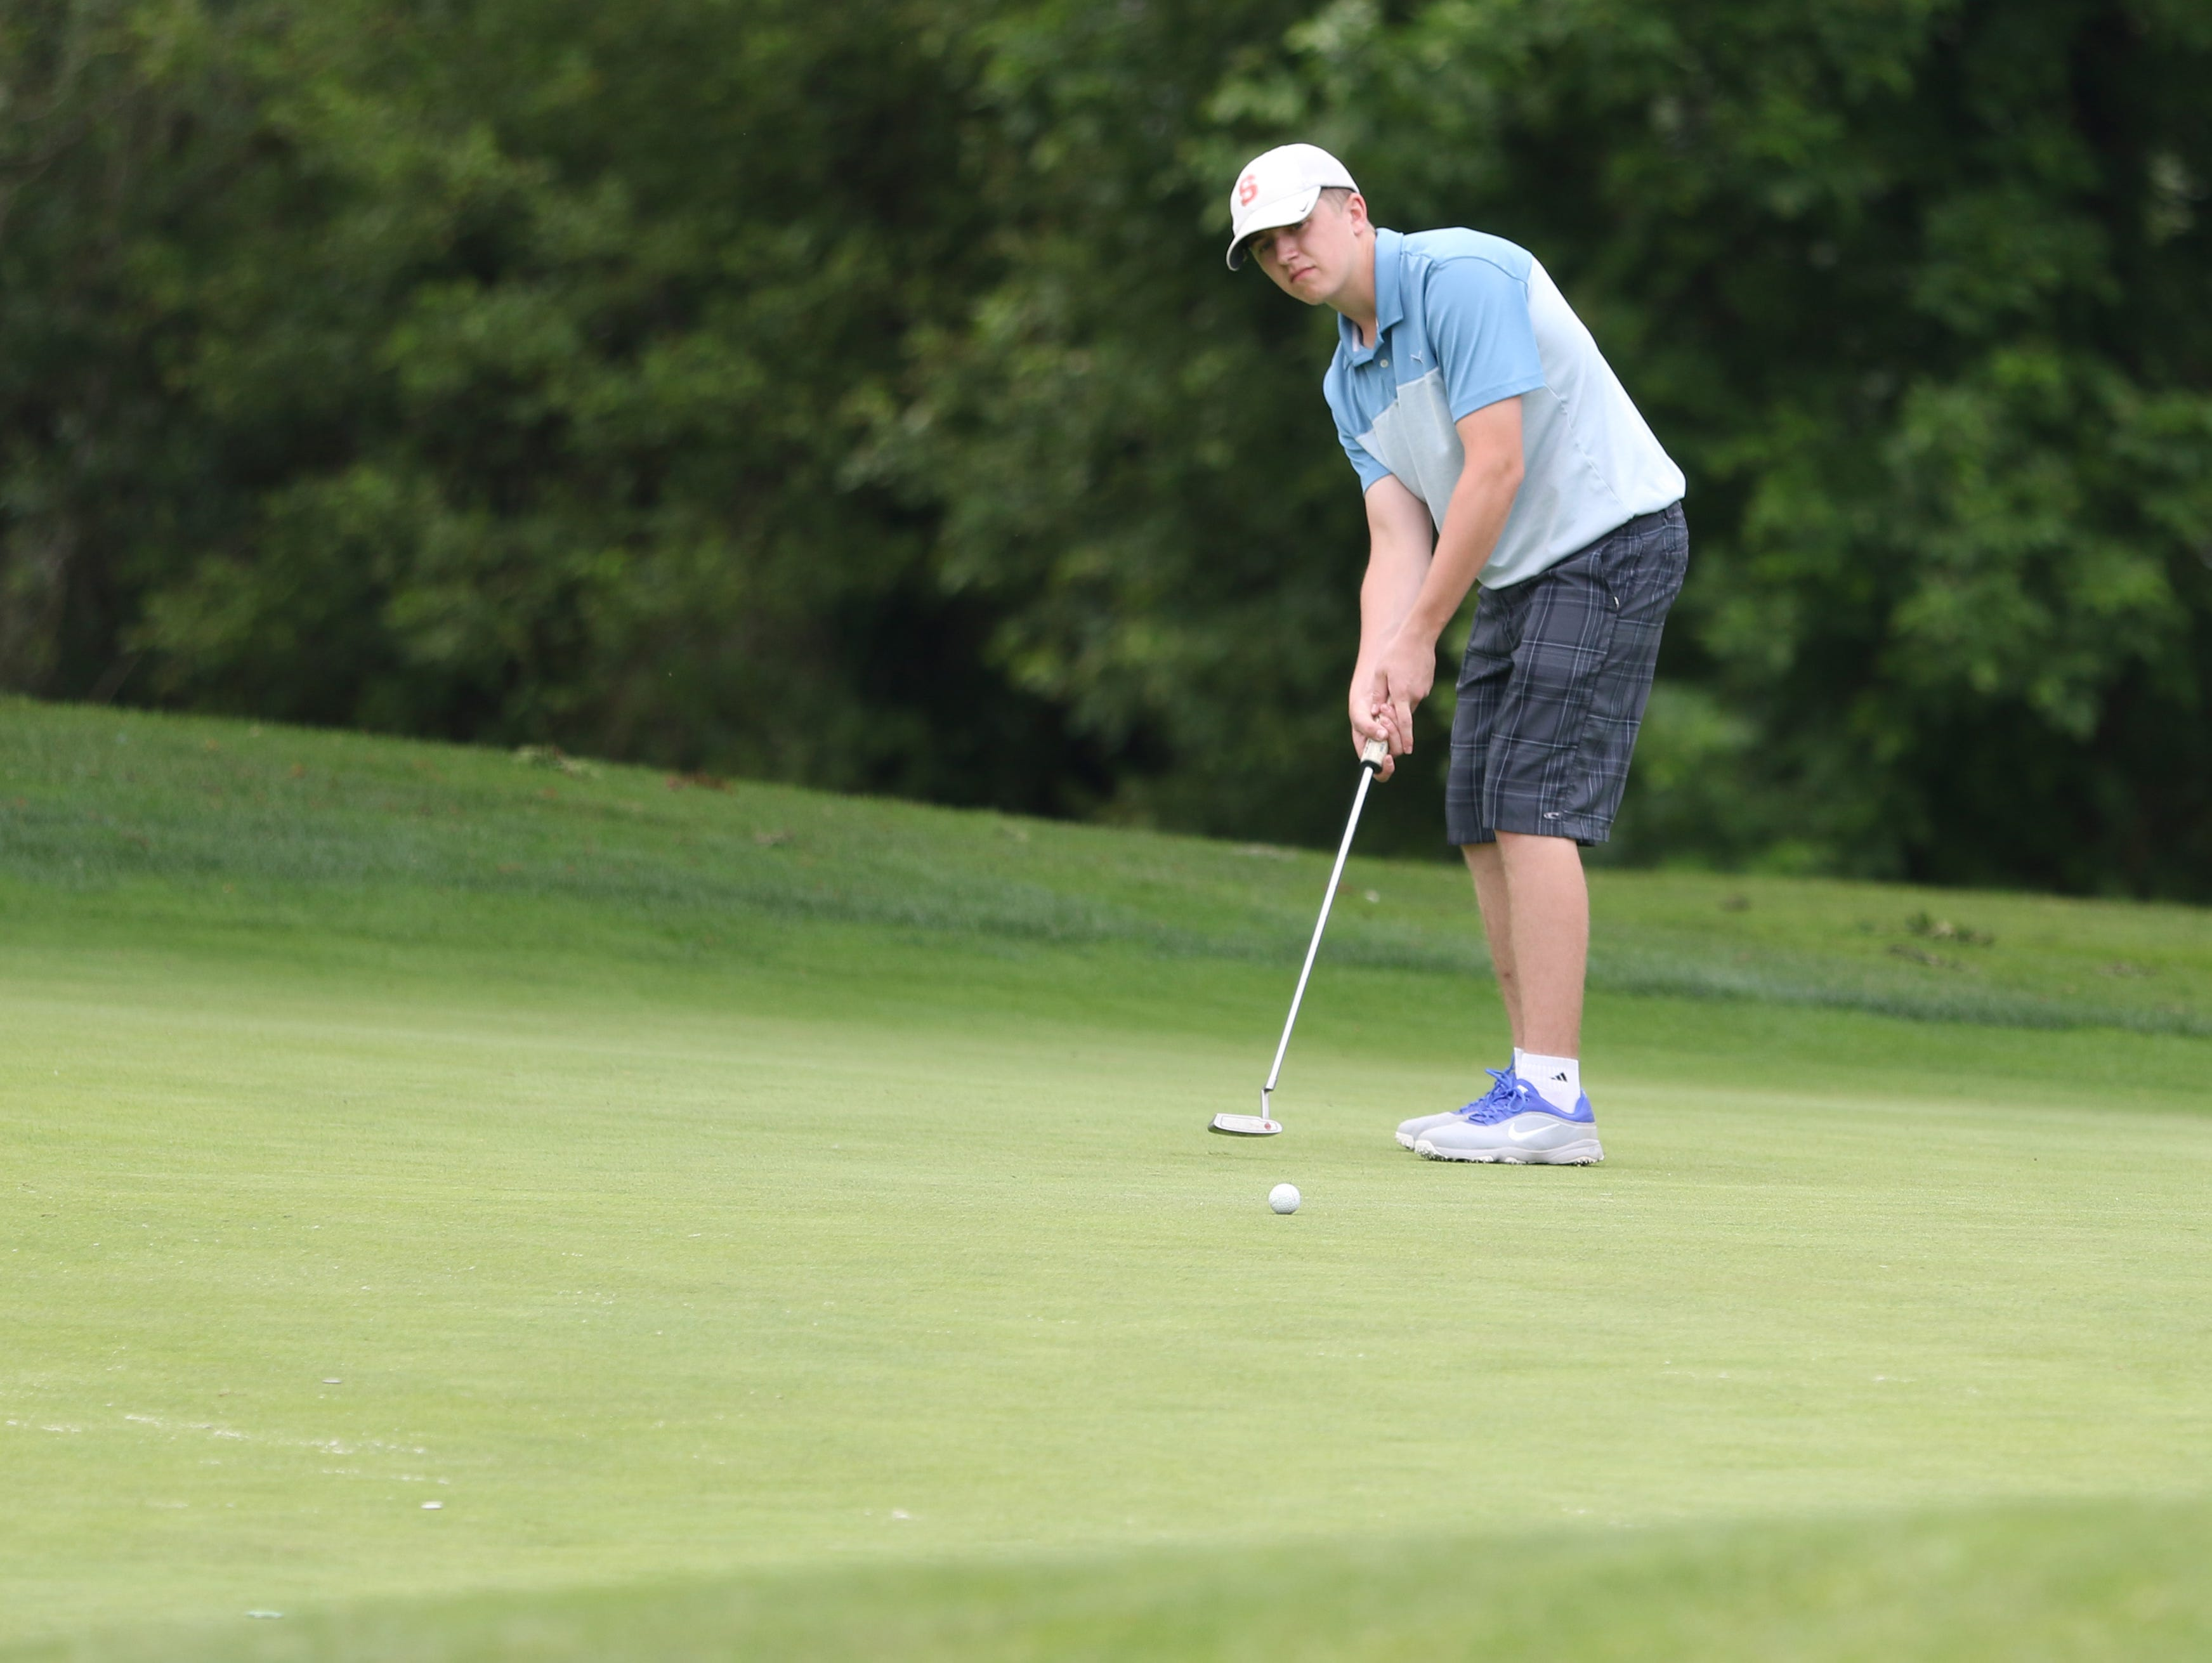 South Salem's Trevor Lawrence putts during the final day of the Greater Valley Conference District Golf Tournament on Tuesday, May 3, 2016, at Trysting Tree Golf Club in Corvallis, Ore.